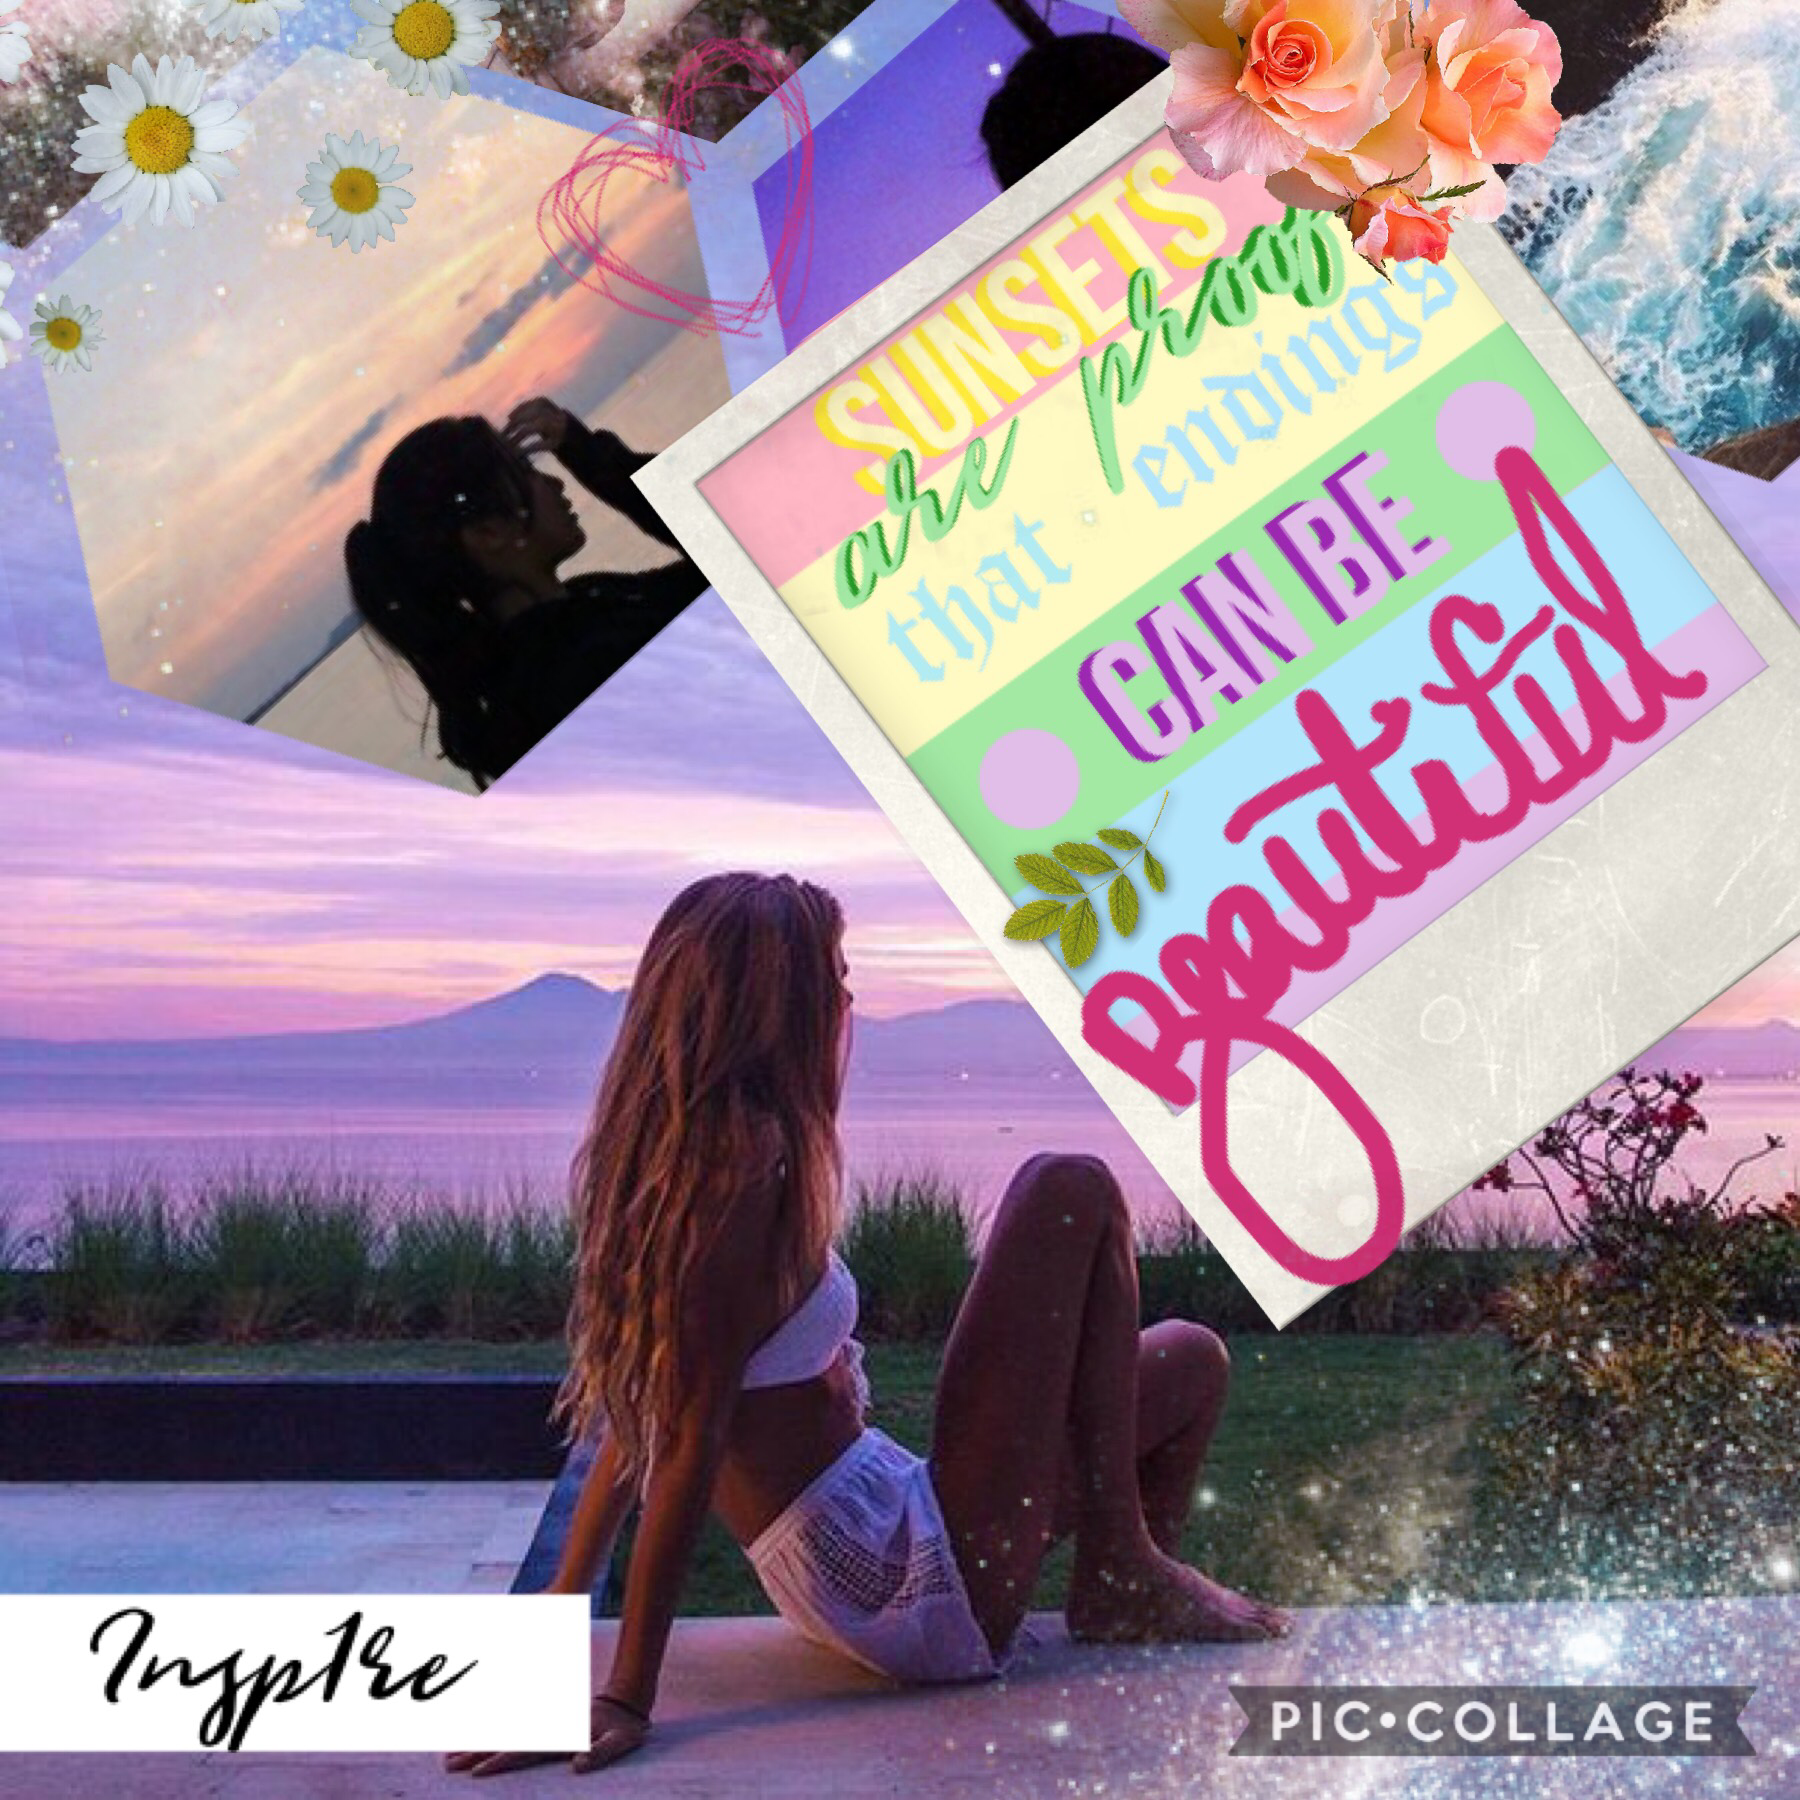 1st collage! Tap! Hello guys! Do you like it?? Plz rate 1-10 thx❤️